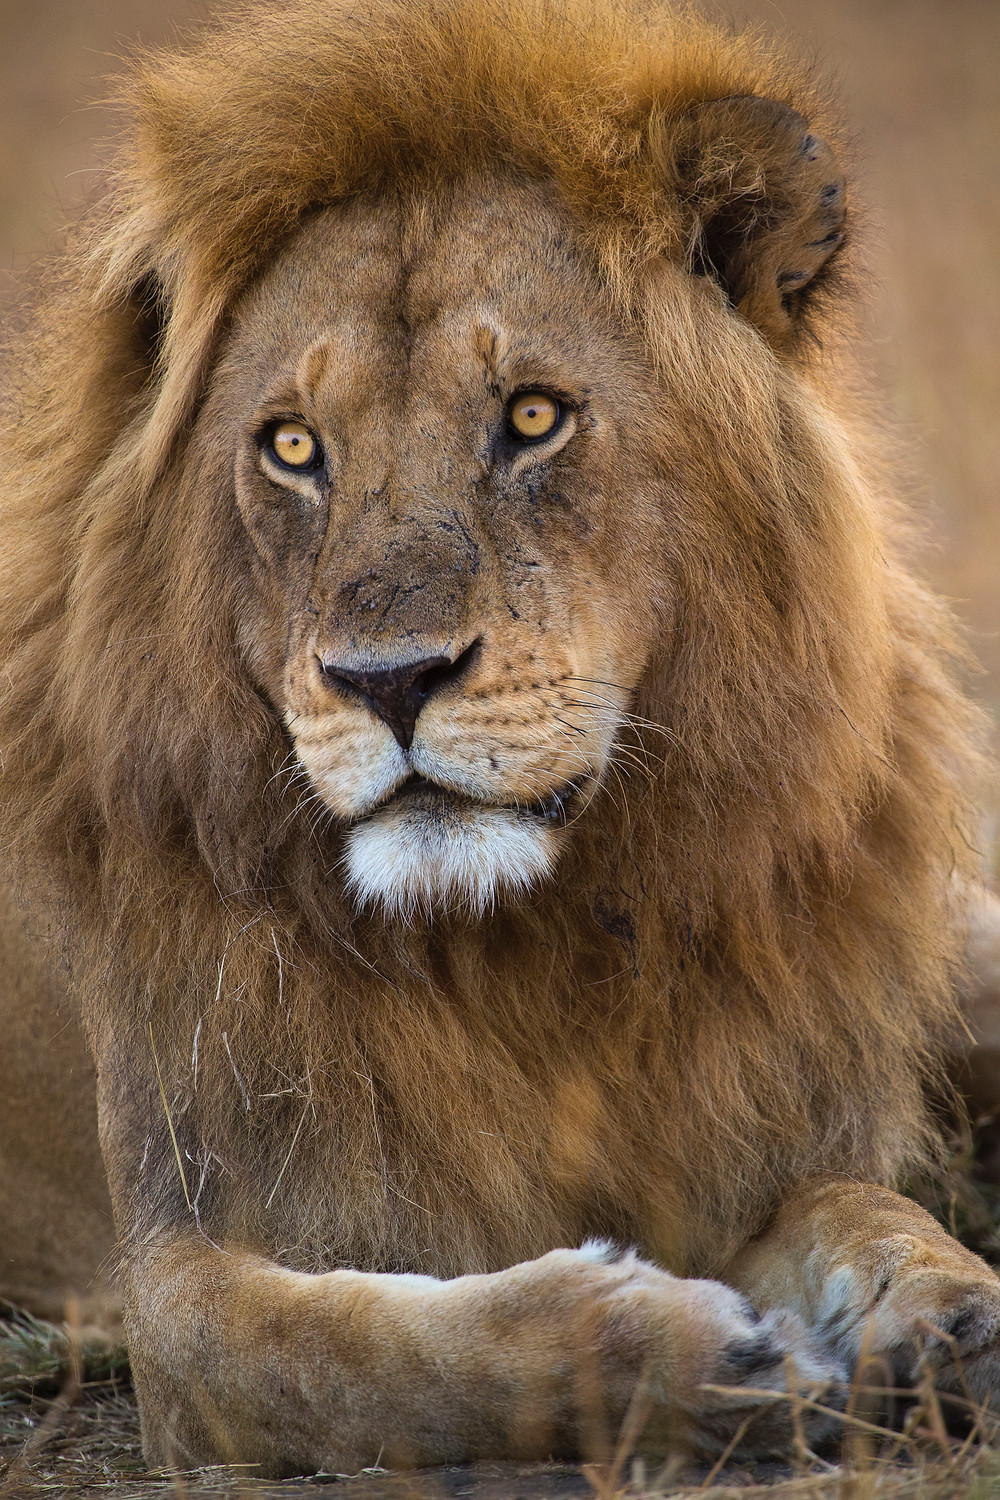 A portrait of a male lion in the Serengeti National Park, Tanzania